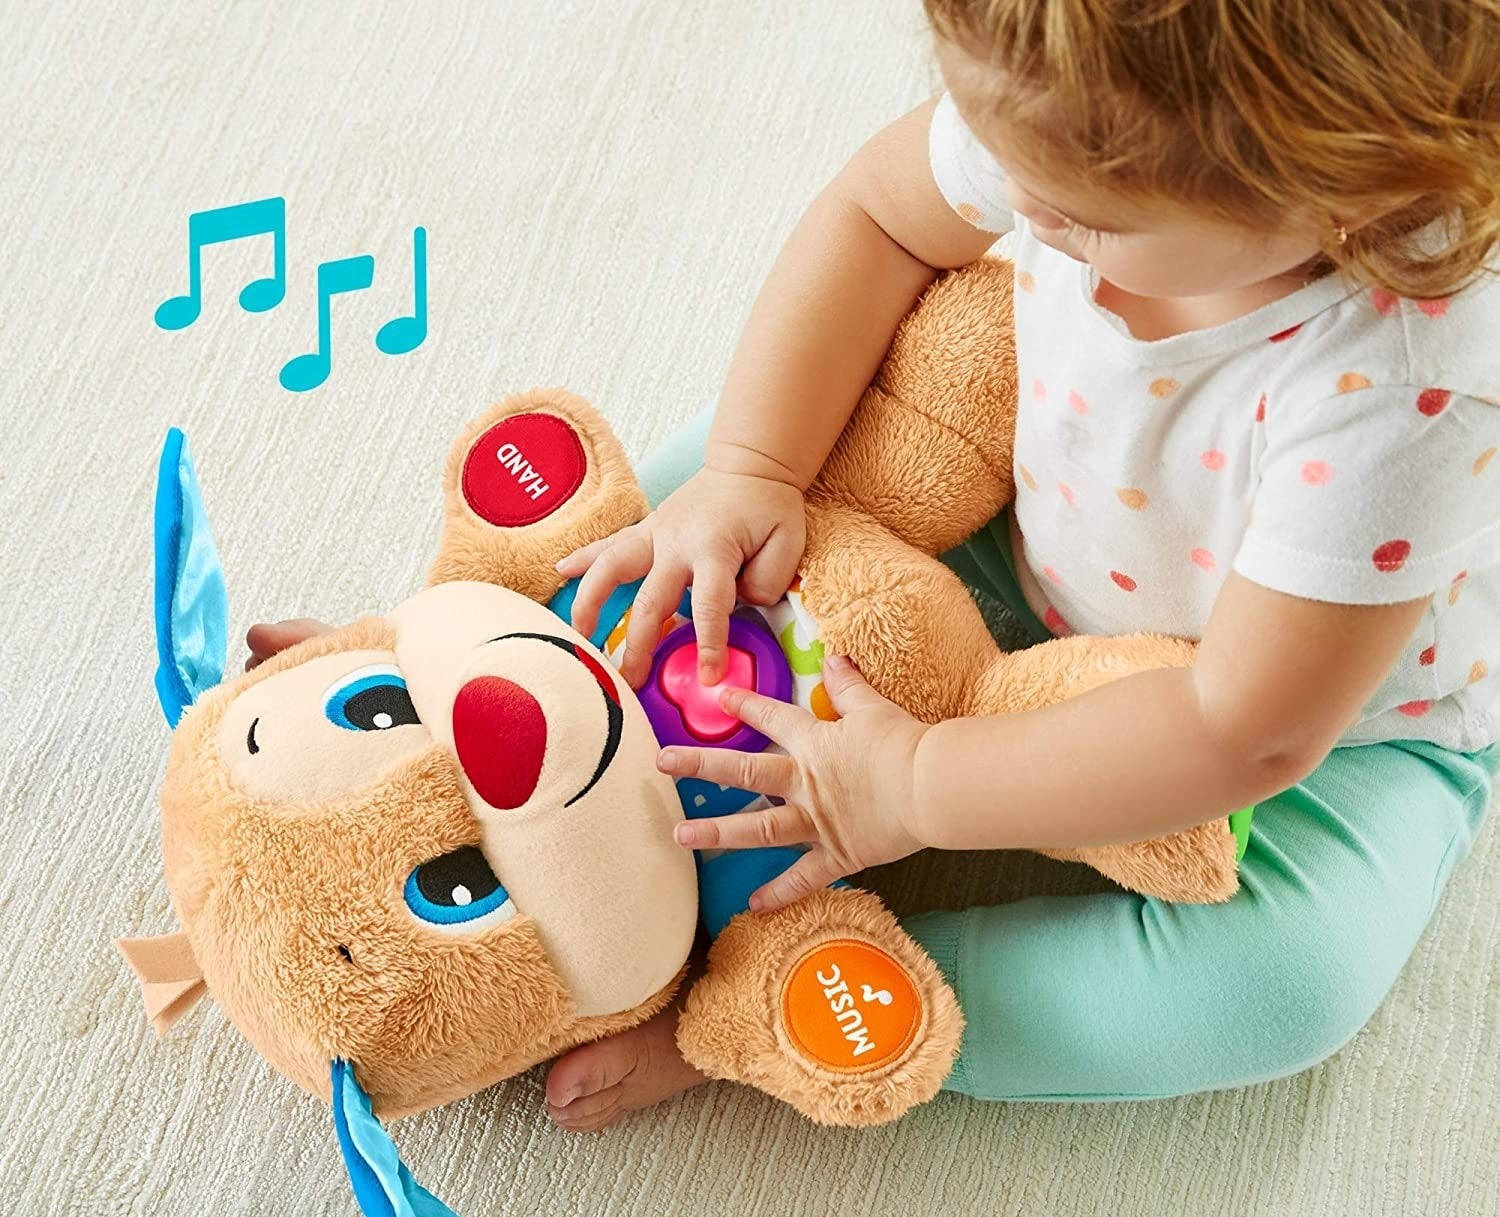 a child squeezing the light up heart on the plush puppy